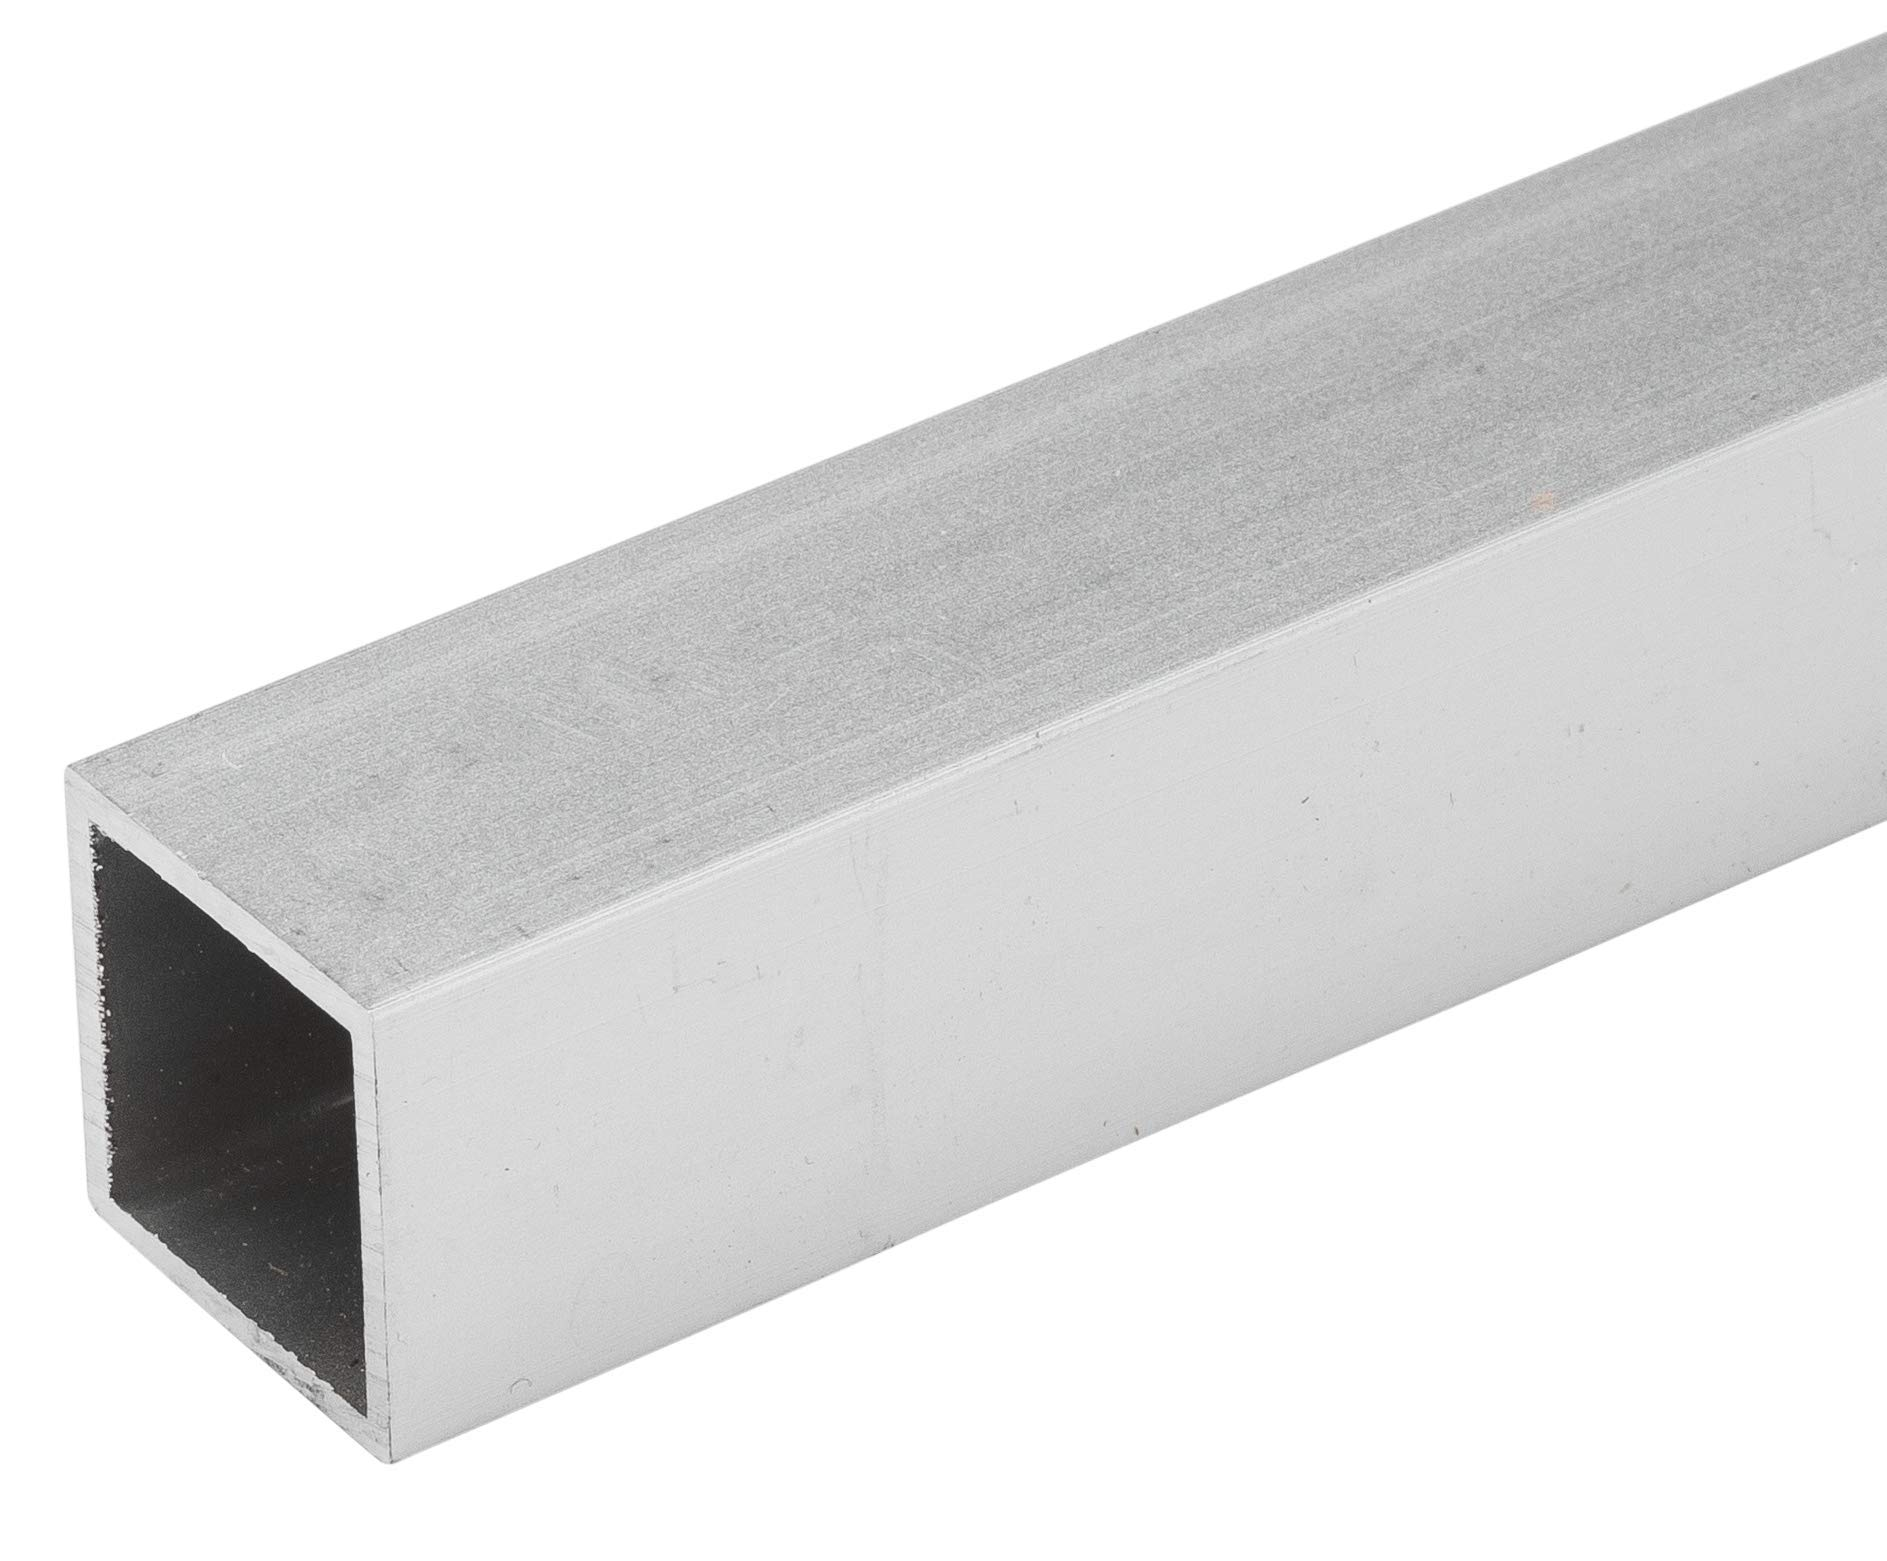 4 FT (48'') 1'' Square Tubing .050'' Wall (3 Pack) Clear Anodized Aluminum by Randall Manufacturing Co., Inc